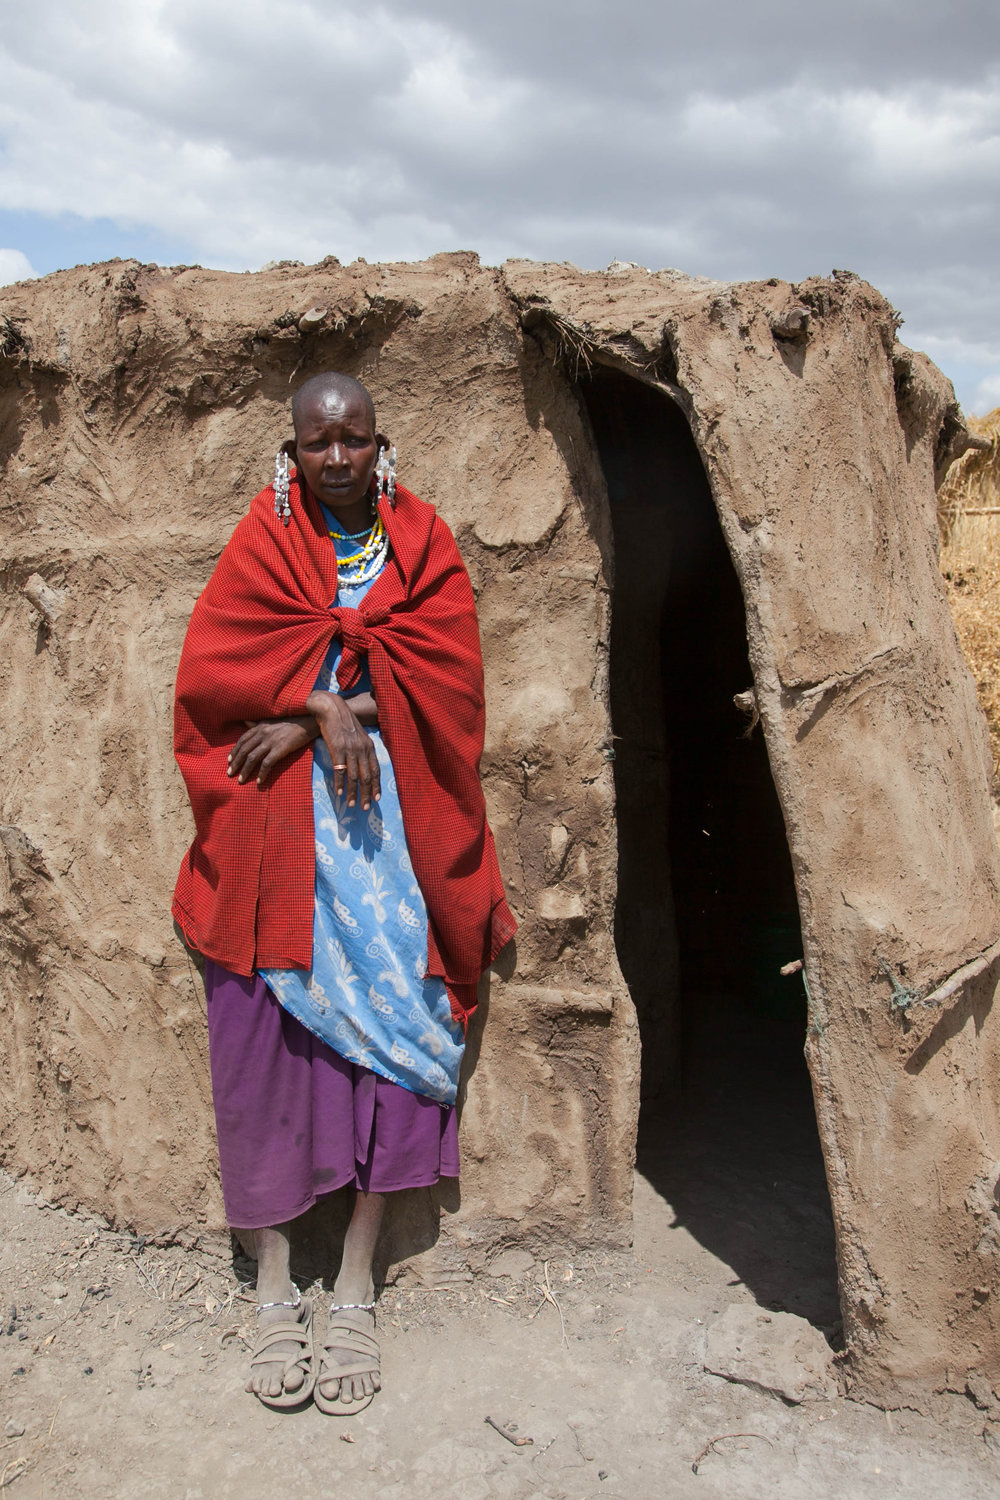 The Maasai's access to ancestral grazing territories are said to be threatened due to globalization land acquisition, luxury safaris, conservation, and climate change.